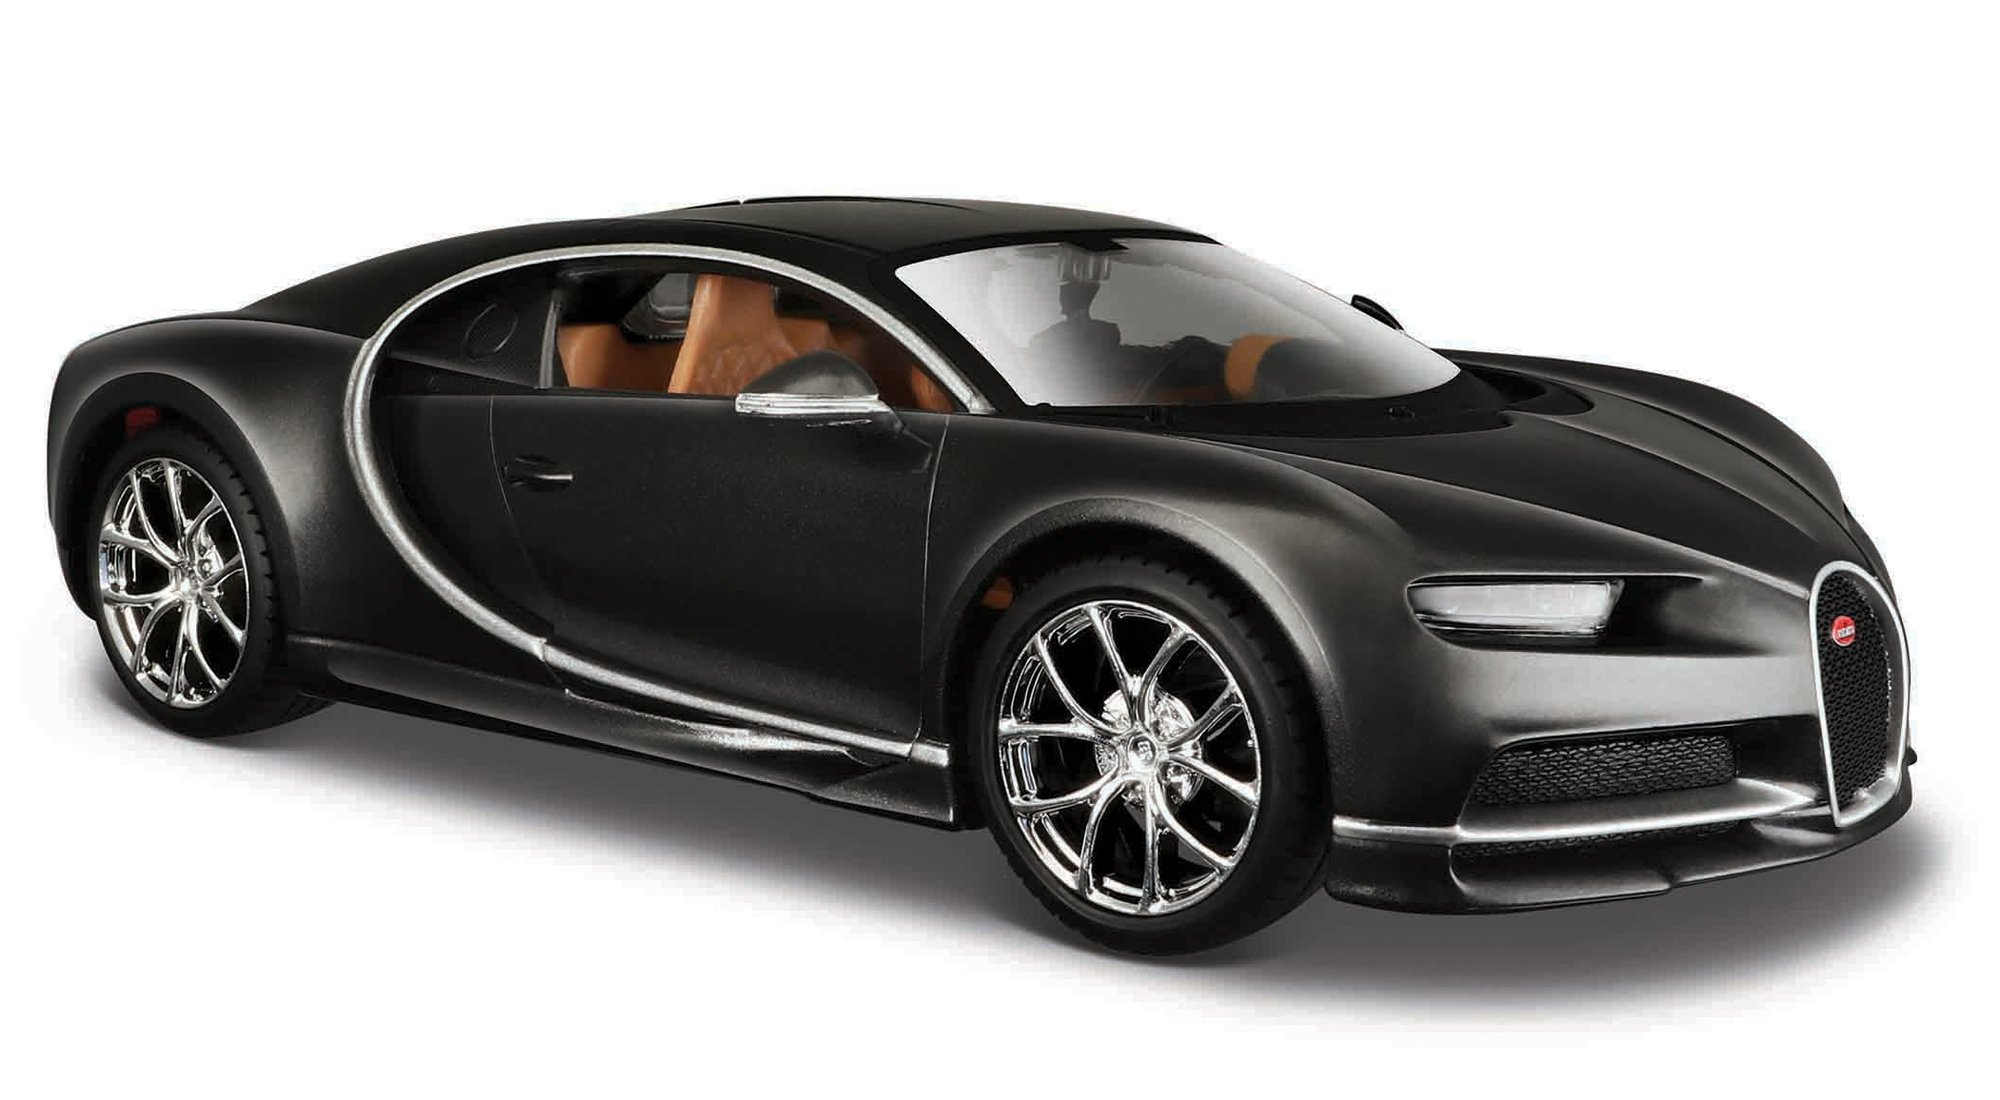 Maisto M31514g 1:24 Scale ''a Bugatti Chiron'' Highly Detail Die-cast Model